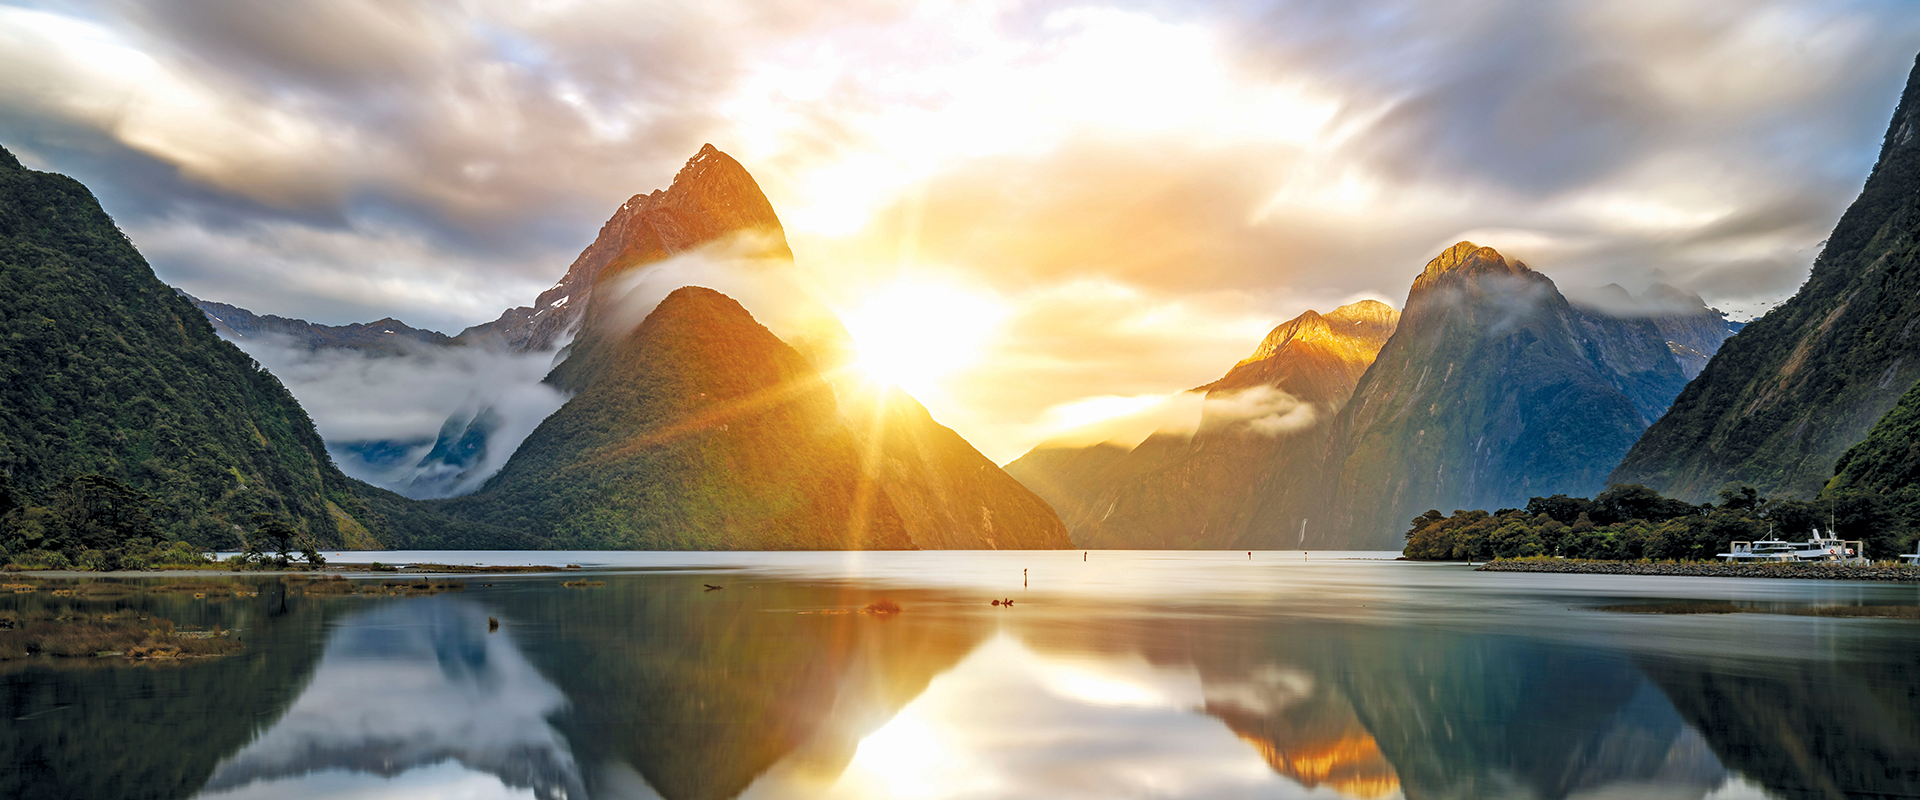 Milford Sound, New Zealand sunrise and sunset